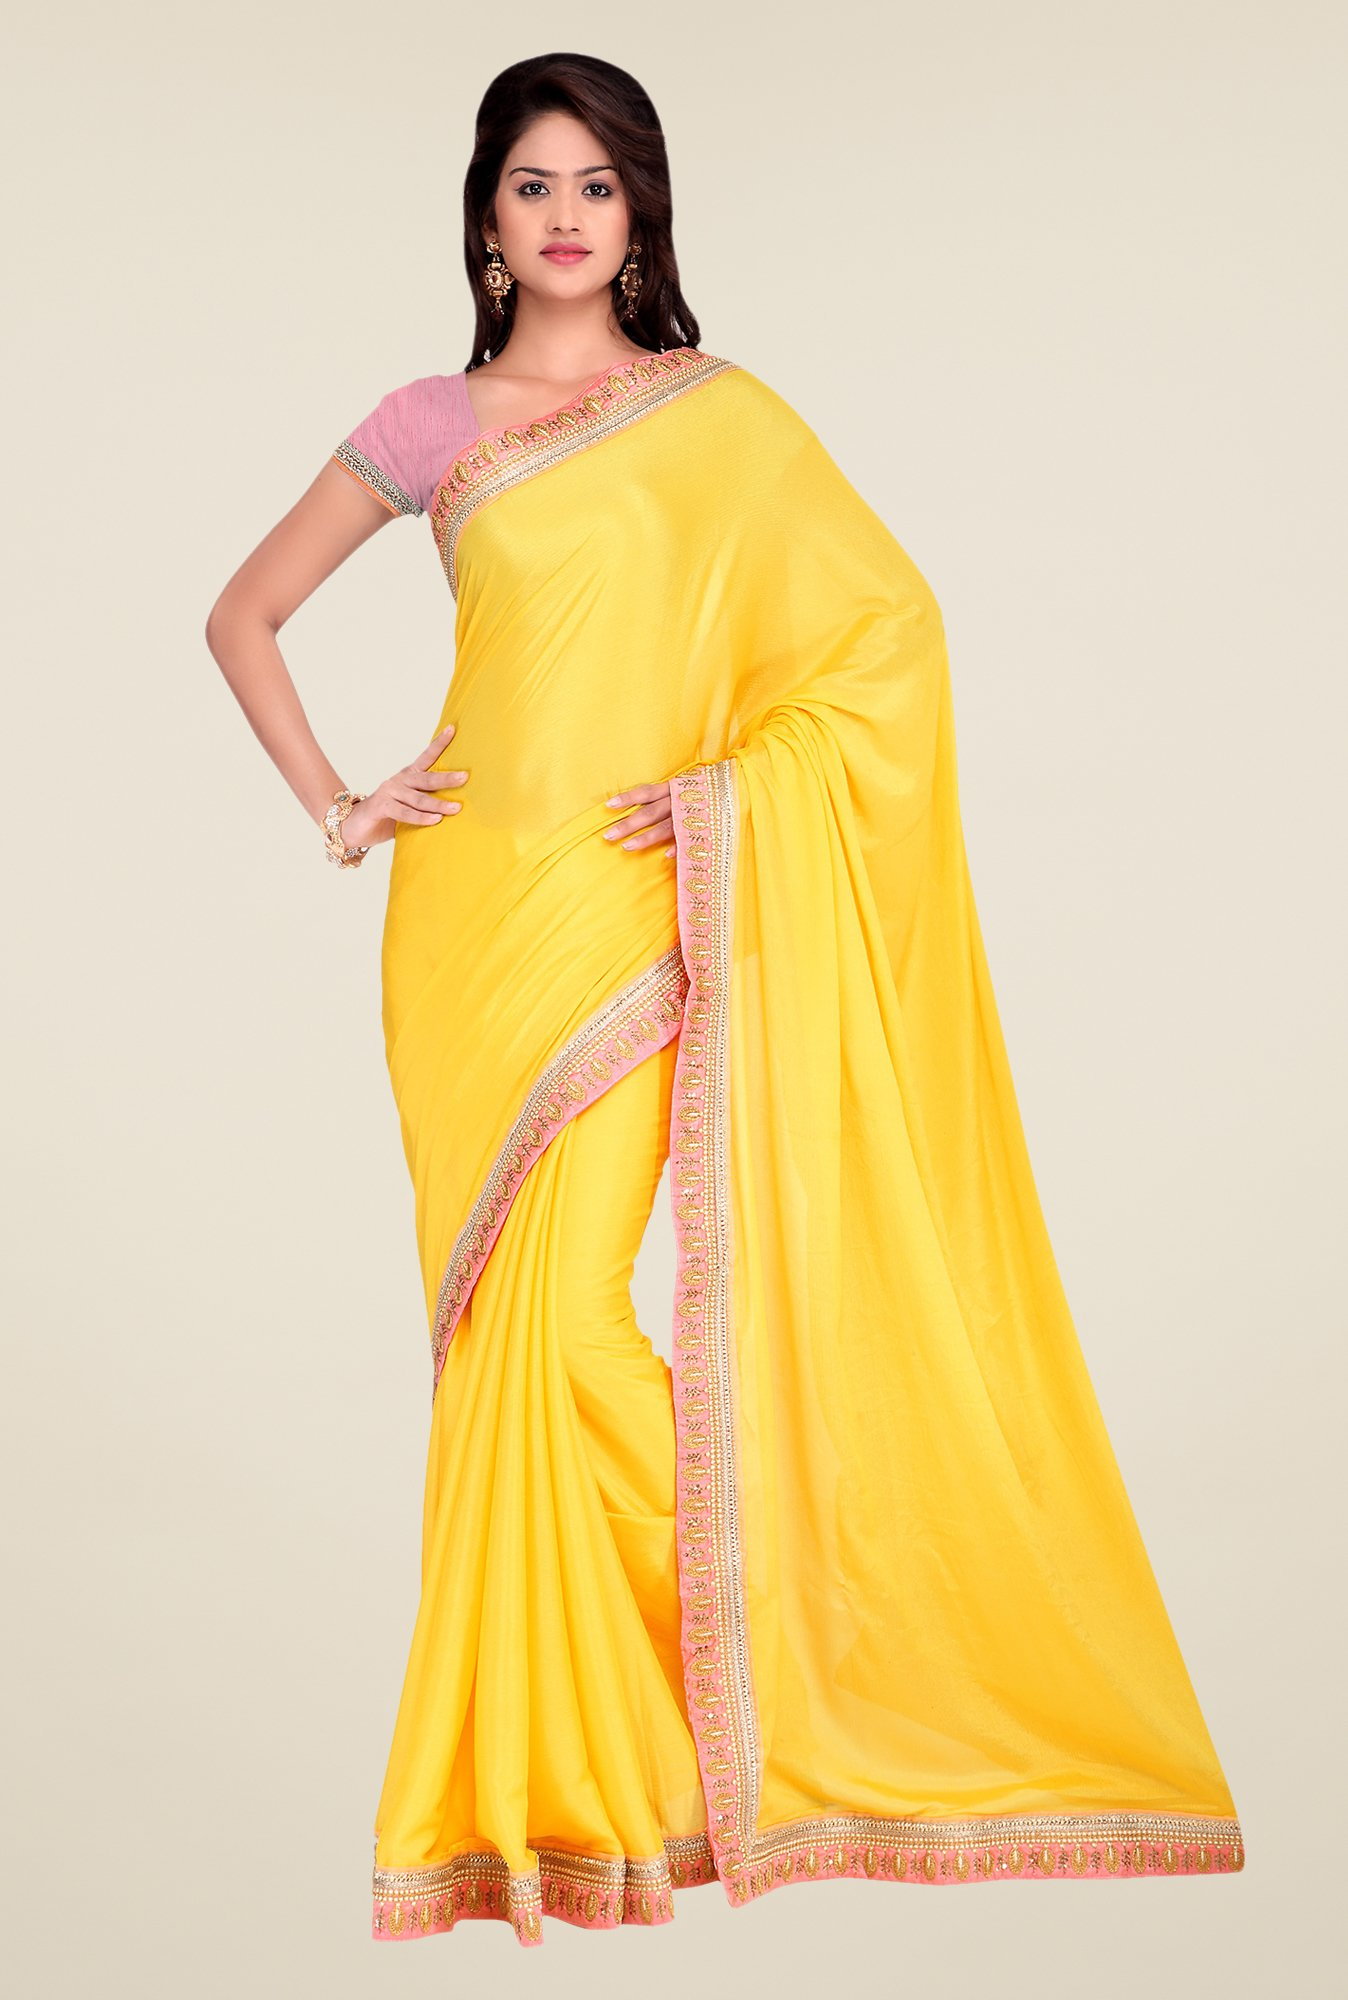 Shonaya Yellow Crepe Chiffon Embroidered Saree